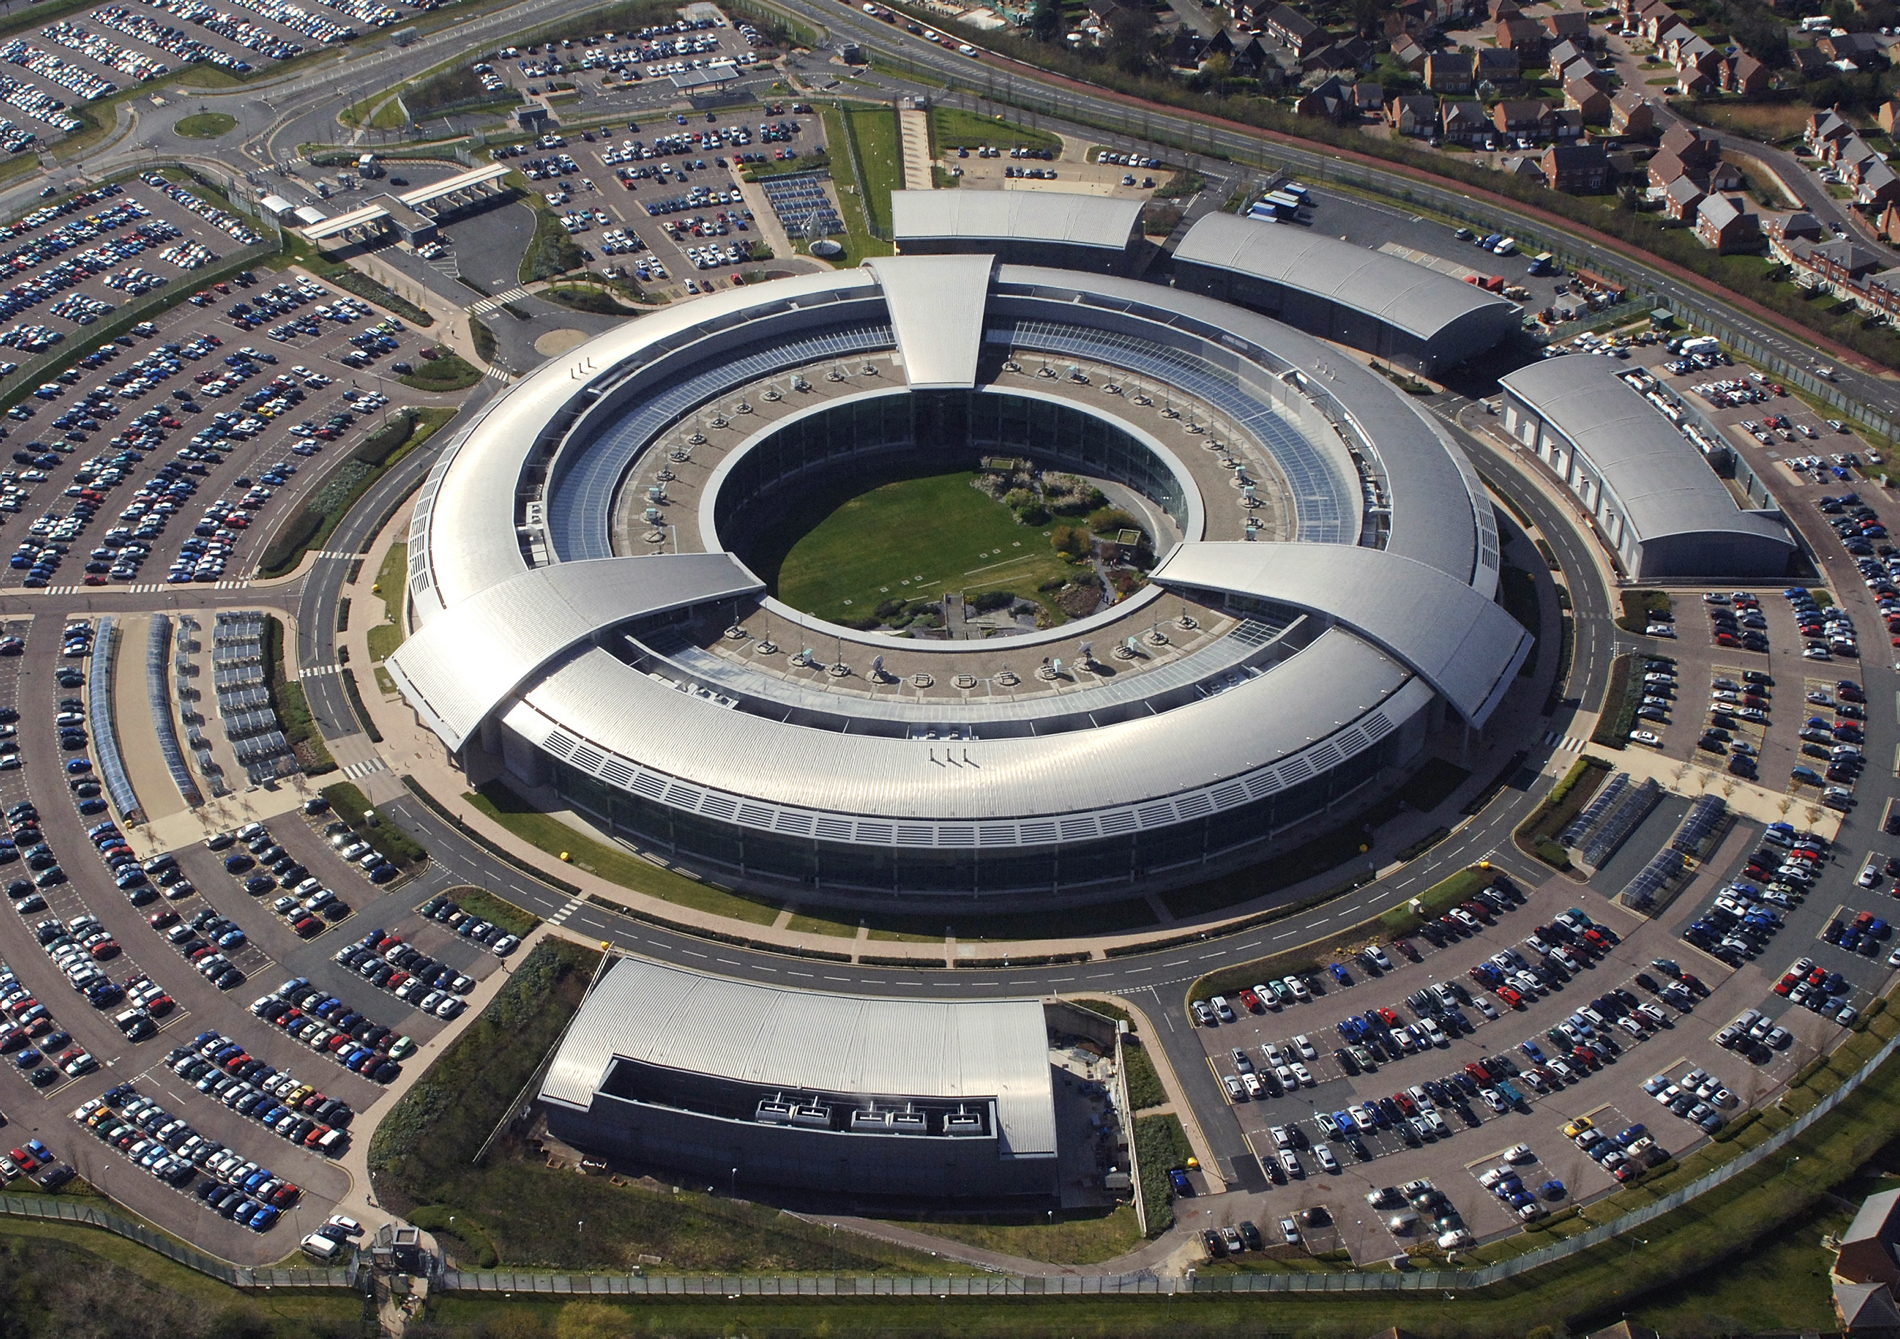 UK launches Cyber Force to conduct offensive operations